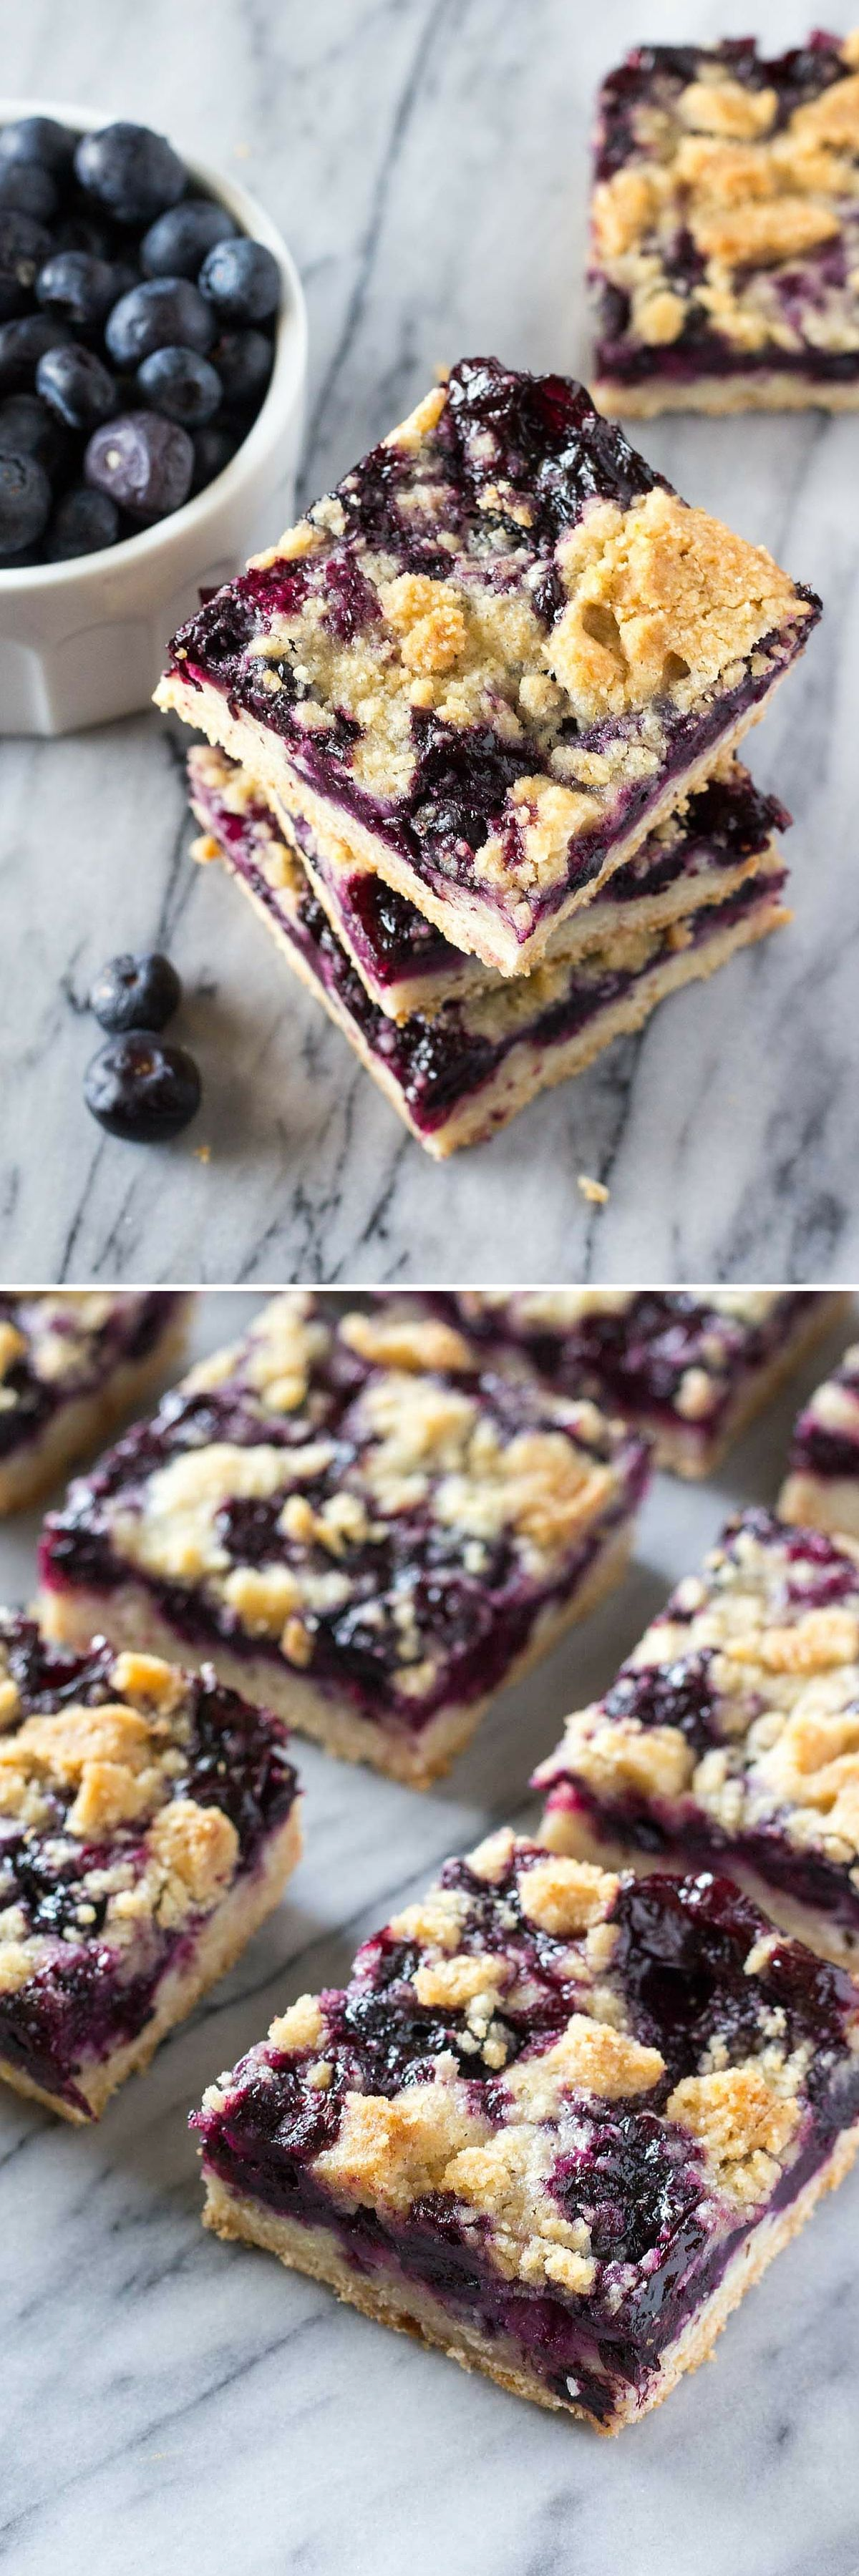 Blueberry Crumble Bars #easydesserts